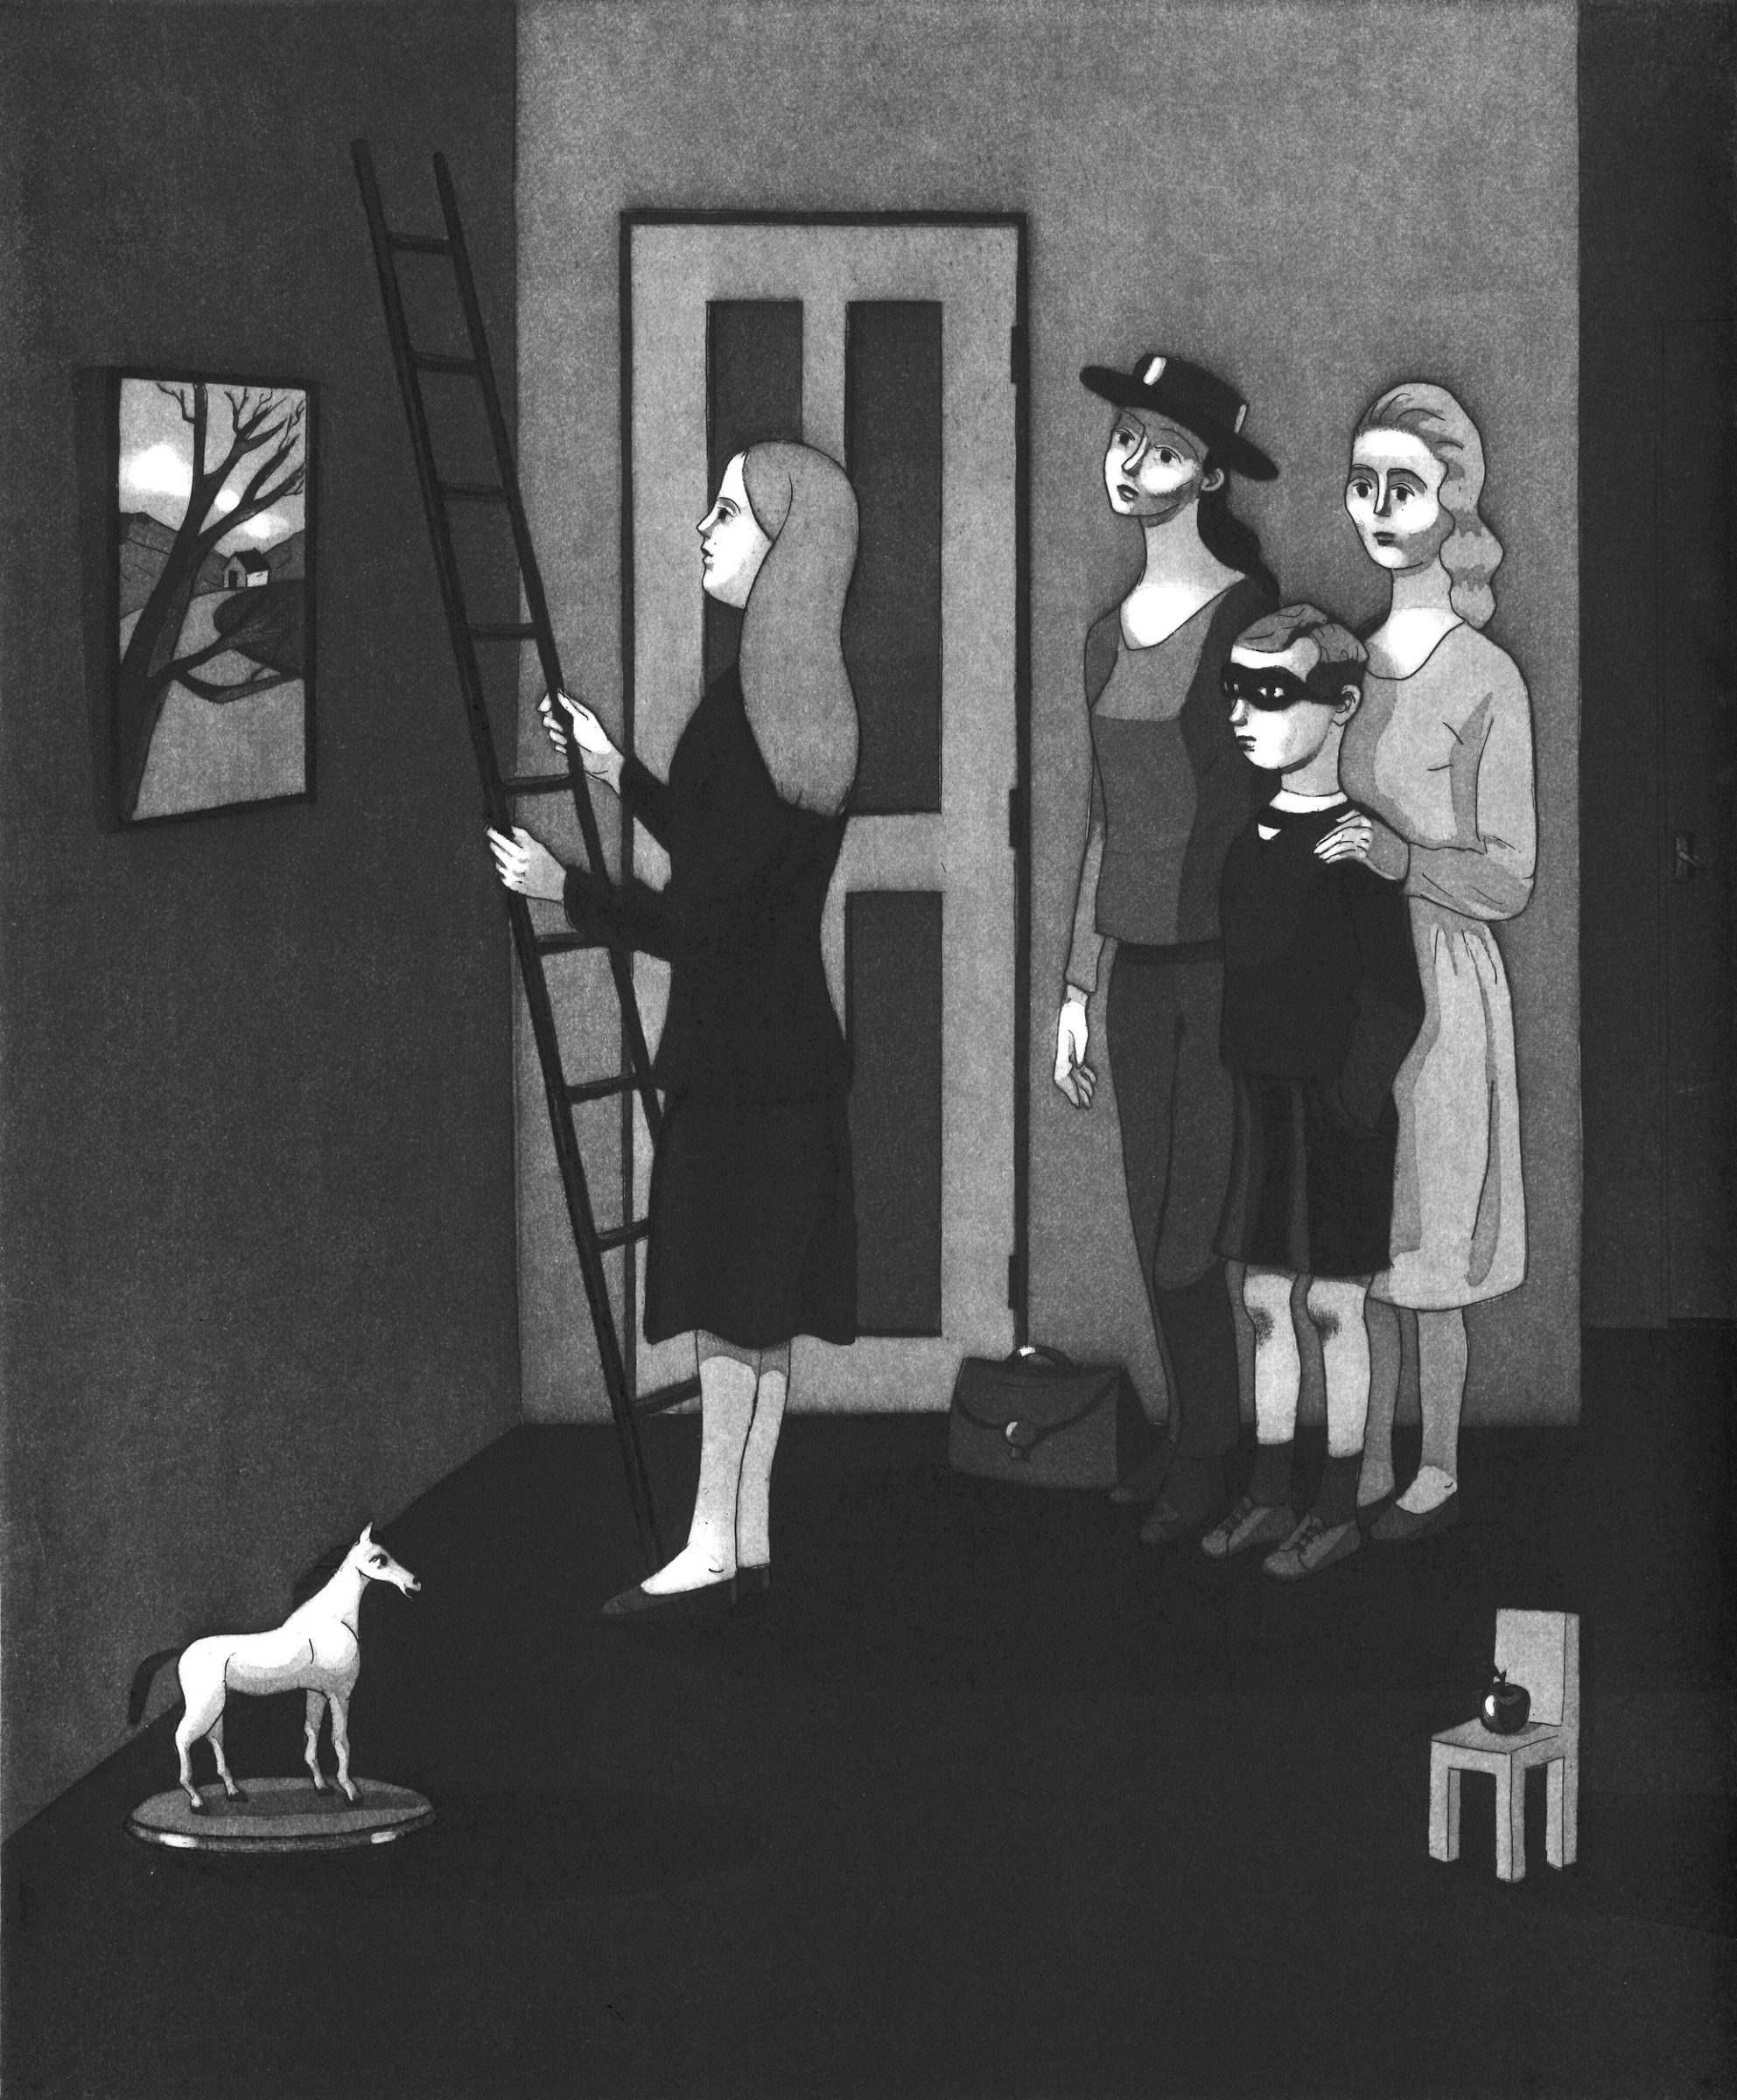 """<span class=""""link fancybox-details-link""""><a href=""""/exhibitions/17/works/image_standalone737/"""">View Detail Page</a></span><p><strong>Sonia Martin</strong></p><p>The Overcoming</p><p>etching and aquatint, ed of 20</p><p>48 x 42cm</p><p>£275 framed</p><p>£225 unframed</p>"""